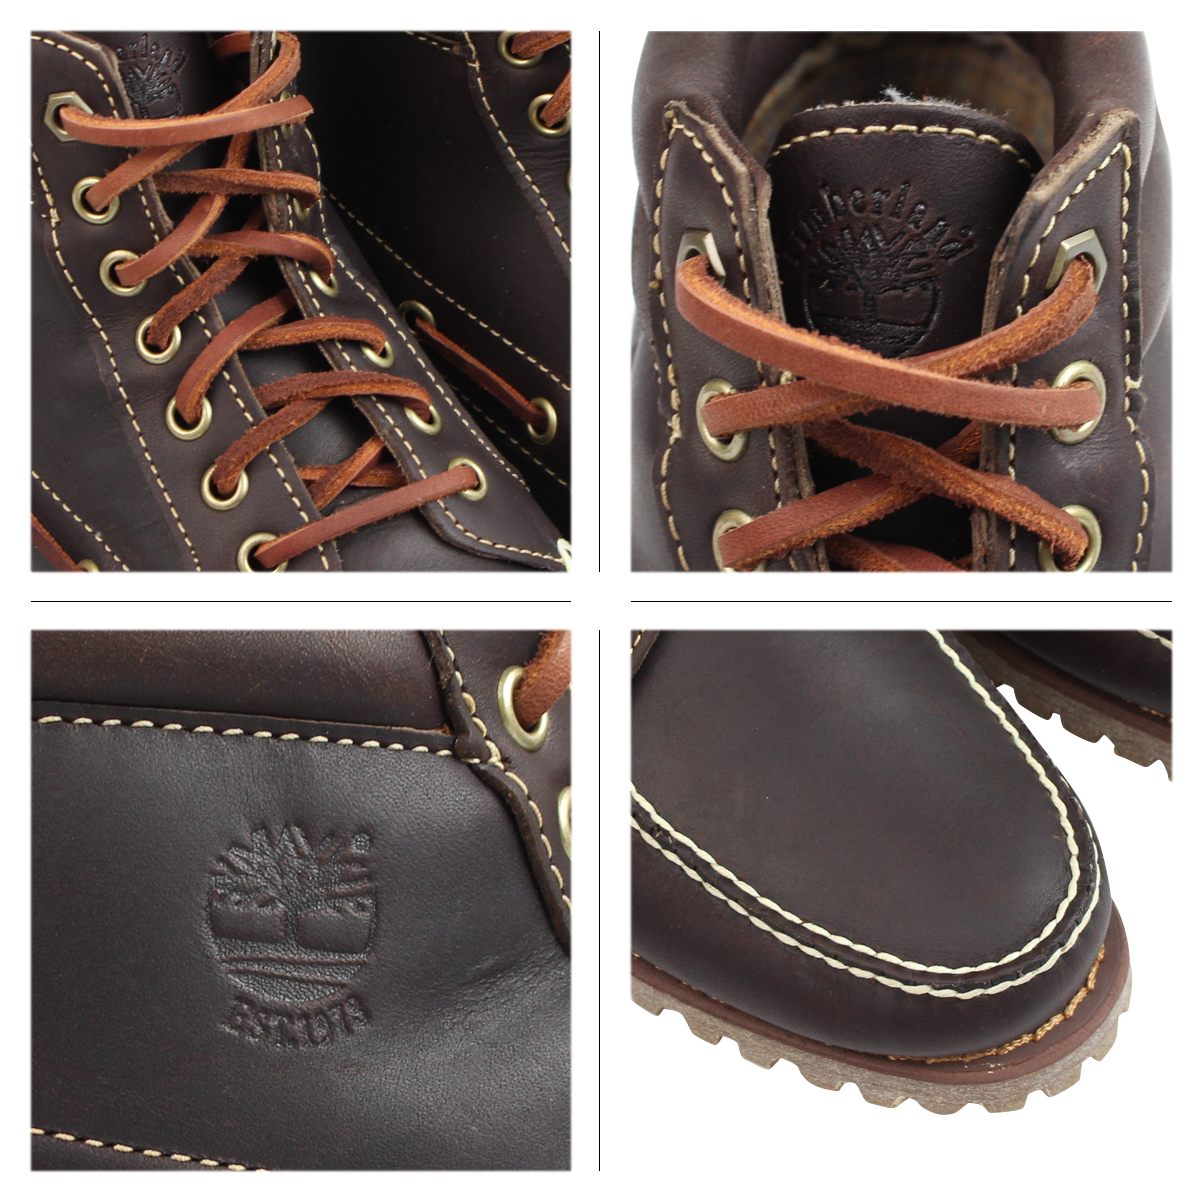 f69fcad5dfc5 Timberland Timberland PENDLETON mens AUTHENTICS 7 EYE CHUKKA chukka boots  authentic 7 eye chukka A13F1 W Wise Brown